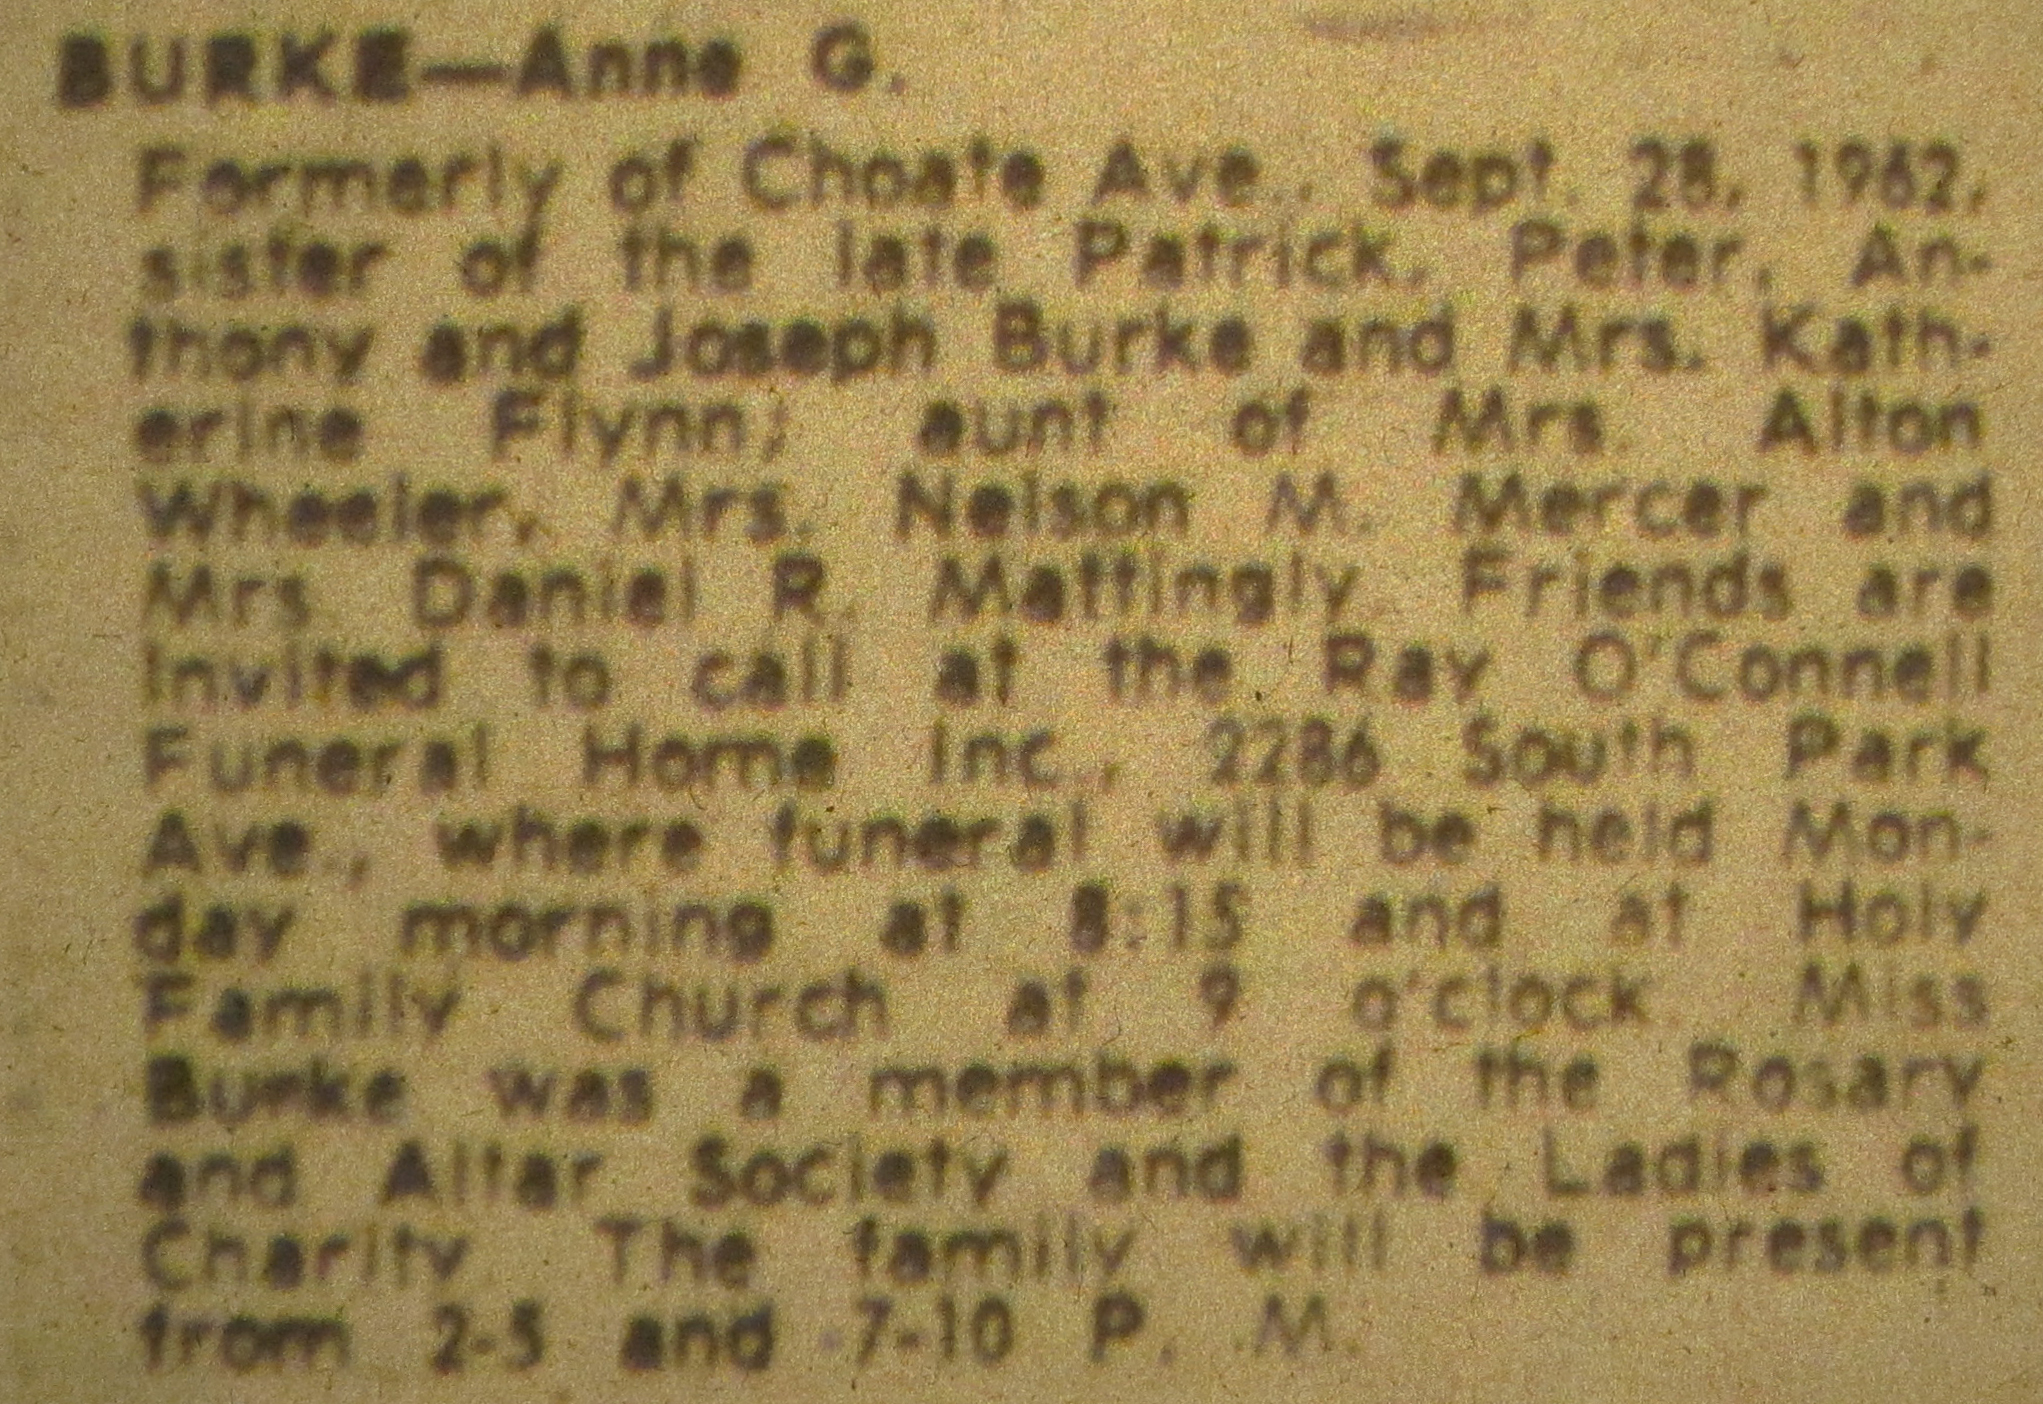 Obituary for anna g burke genealogy and jure sanguinis im going to try to get her death certificate in september after 50 years have passed and it becomes a public record xflitez Choice Image